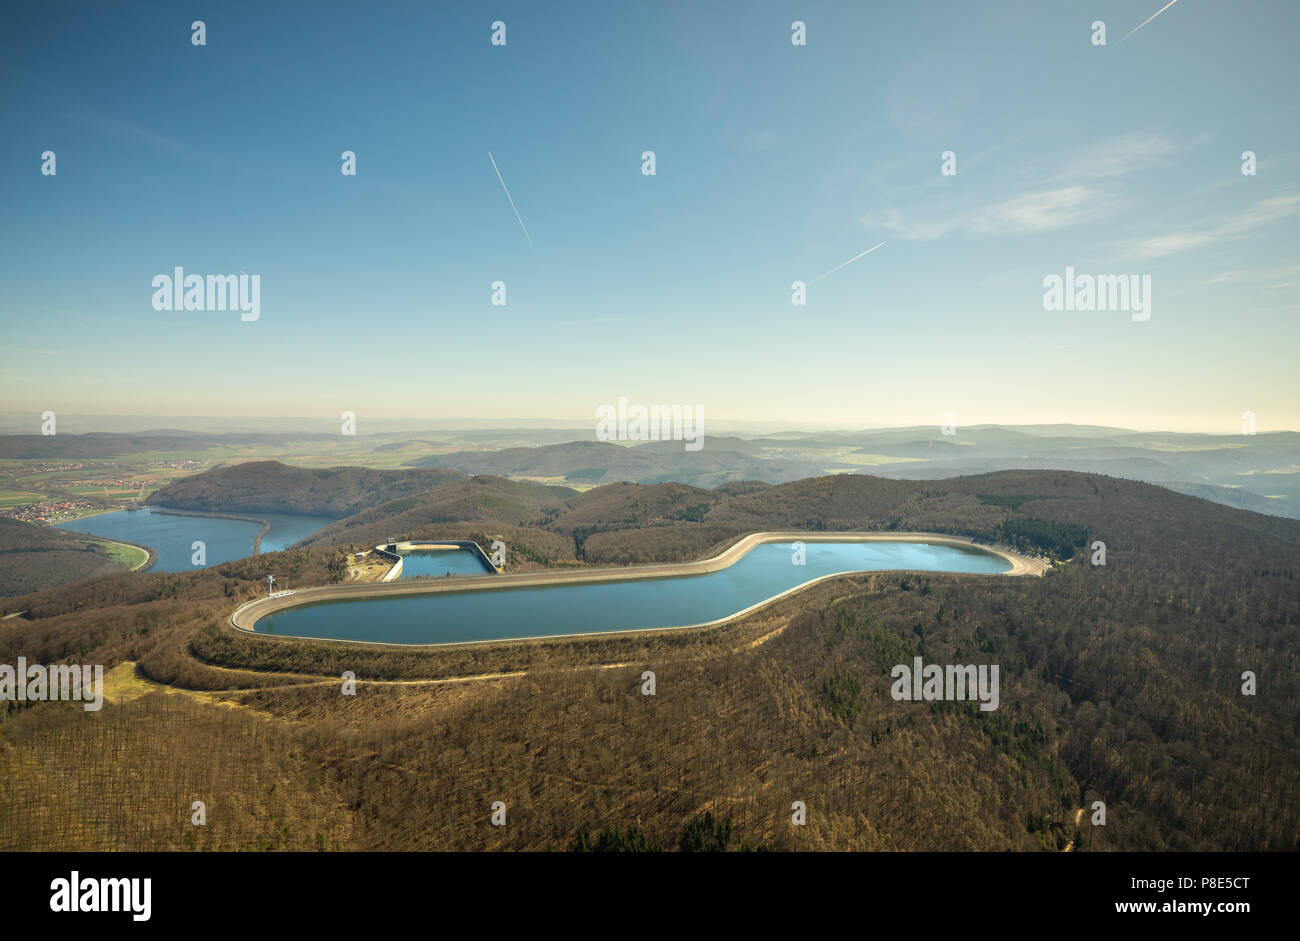 Aerial view, High storage reservoir with Waldeck pumped storage power station, water storage, Edertal, North Hesse, Hesse - Stock Image